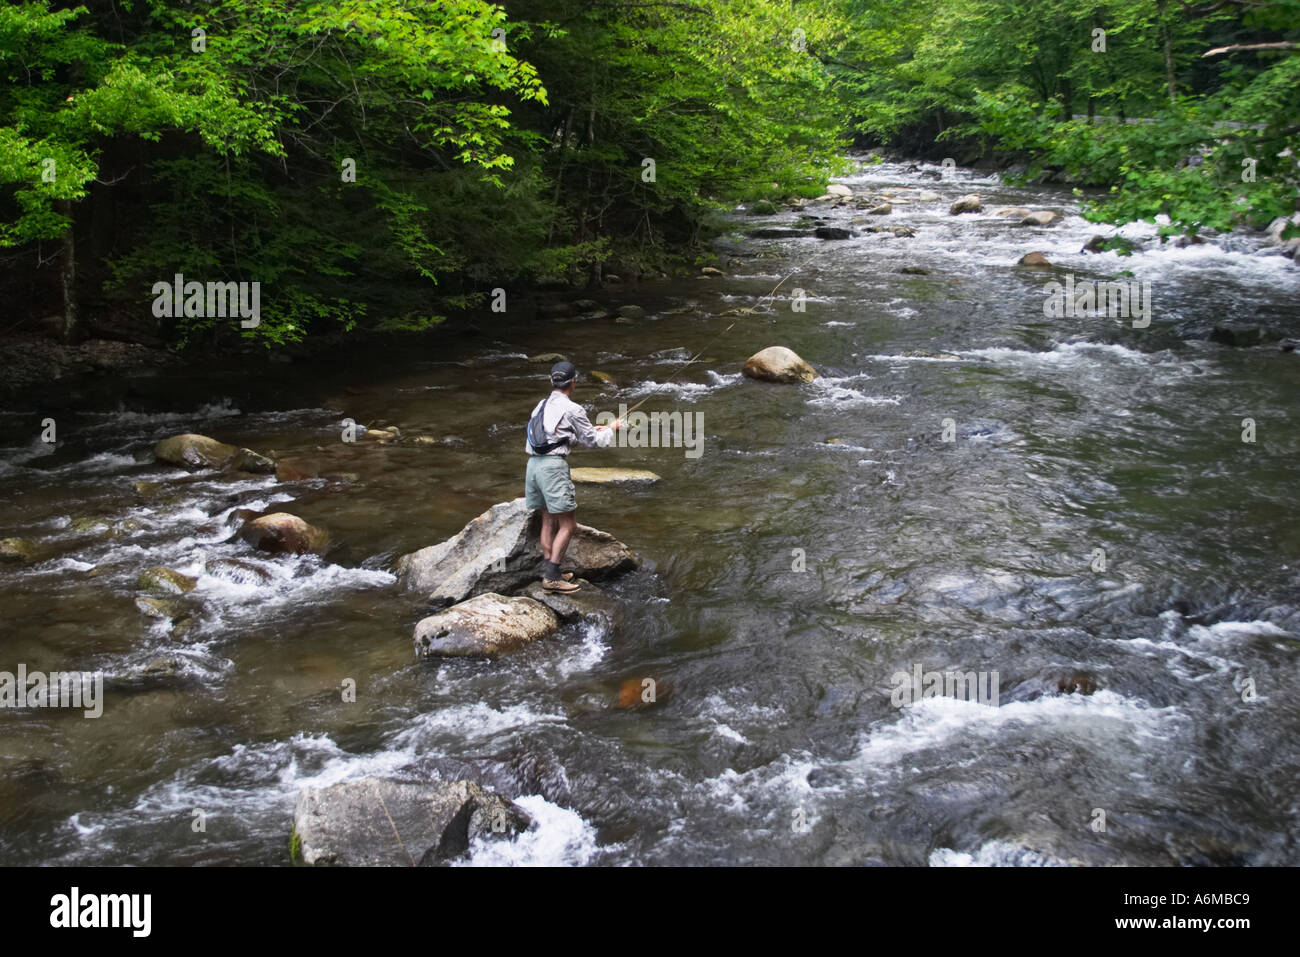 Man fly fishing in a smoky mountain trout stream stock for Smoky mountain trout fishing